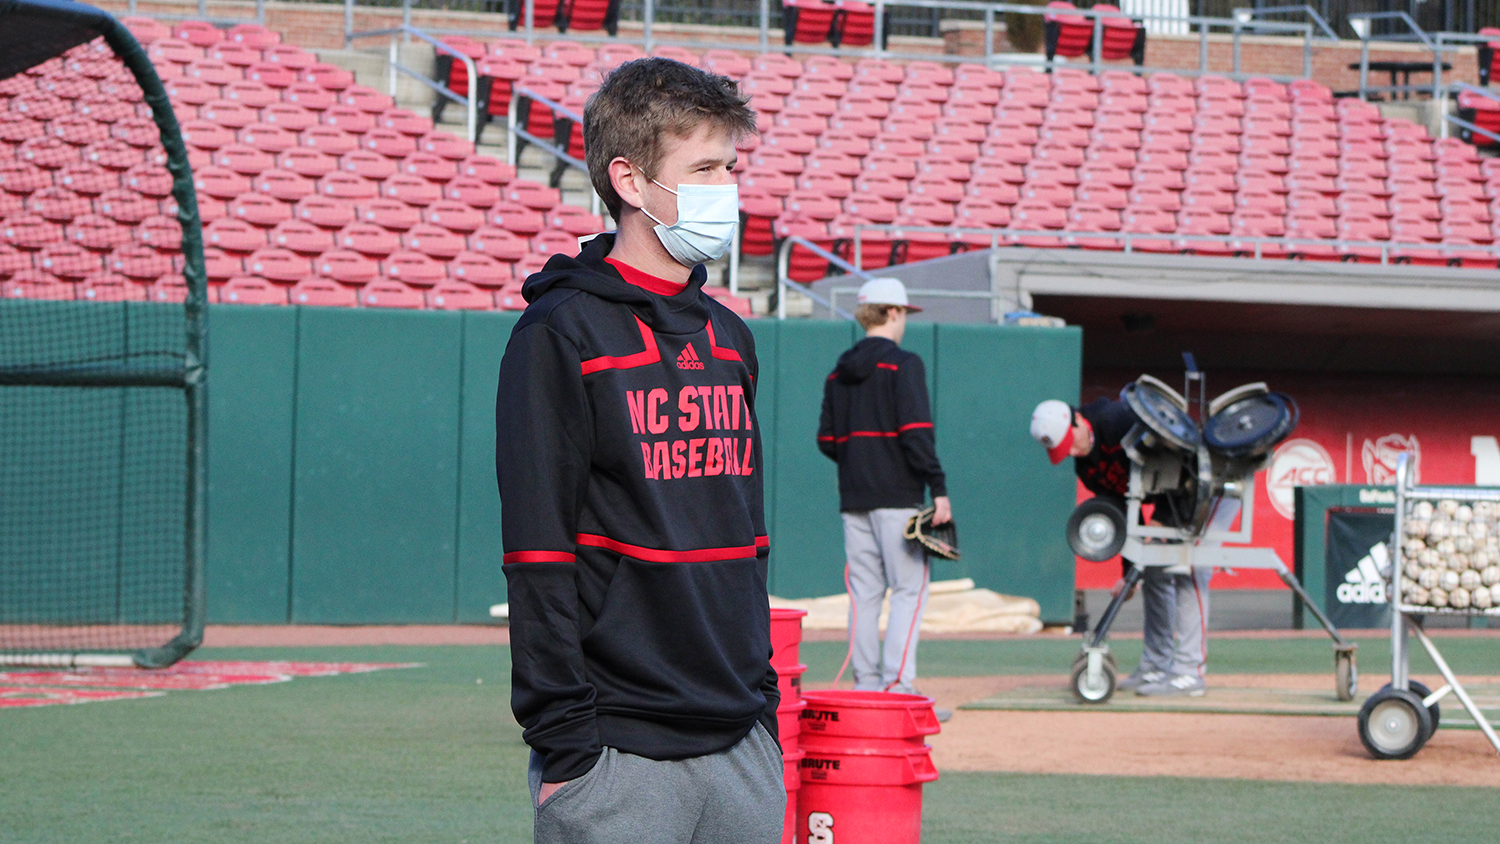 Harrison McKinion on the baseball diamond at NC State.